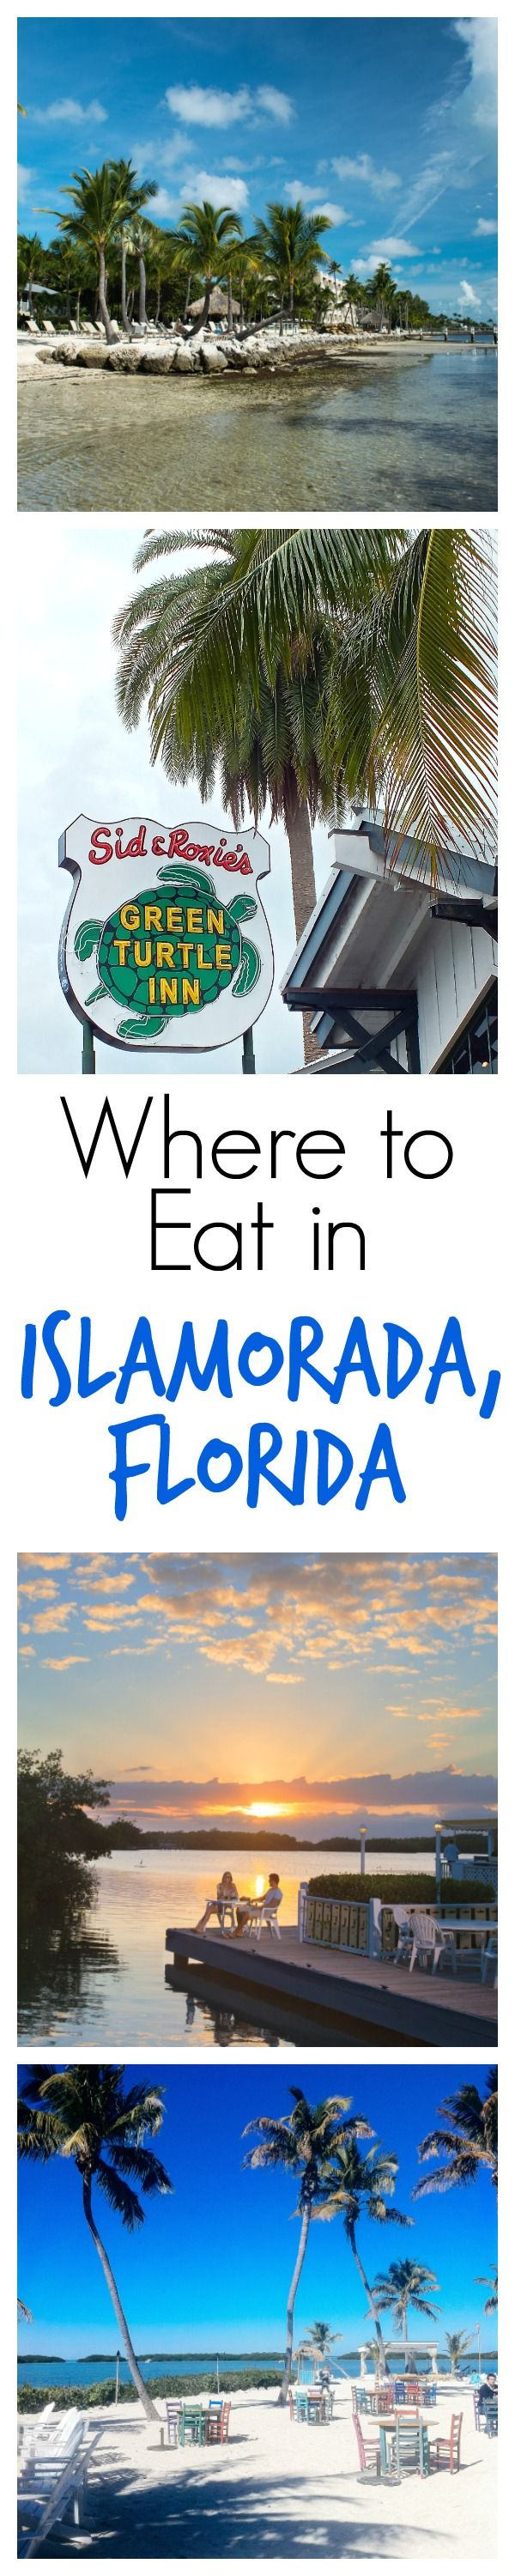 ISLAMORADA -- the best stop on the road trip from Miami to Key West. This pin has suggestions for where to eat for casual, fancy, or right in the sand!